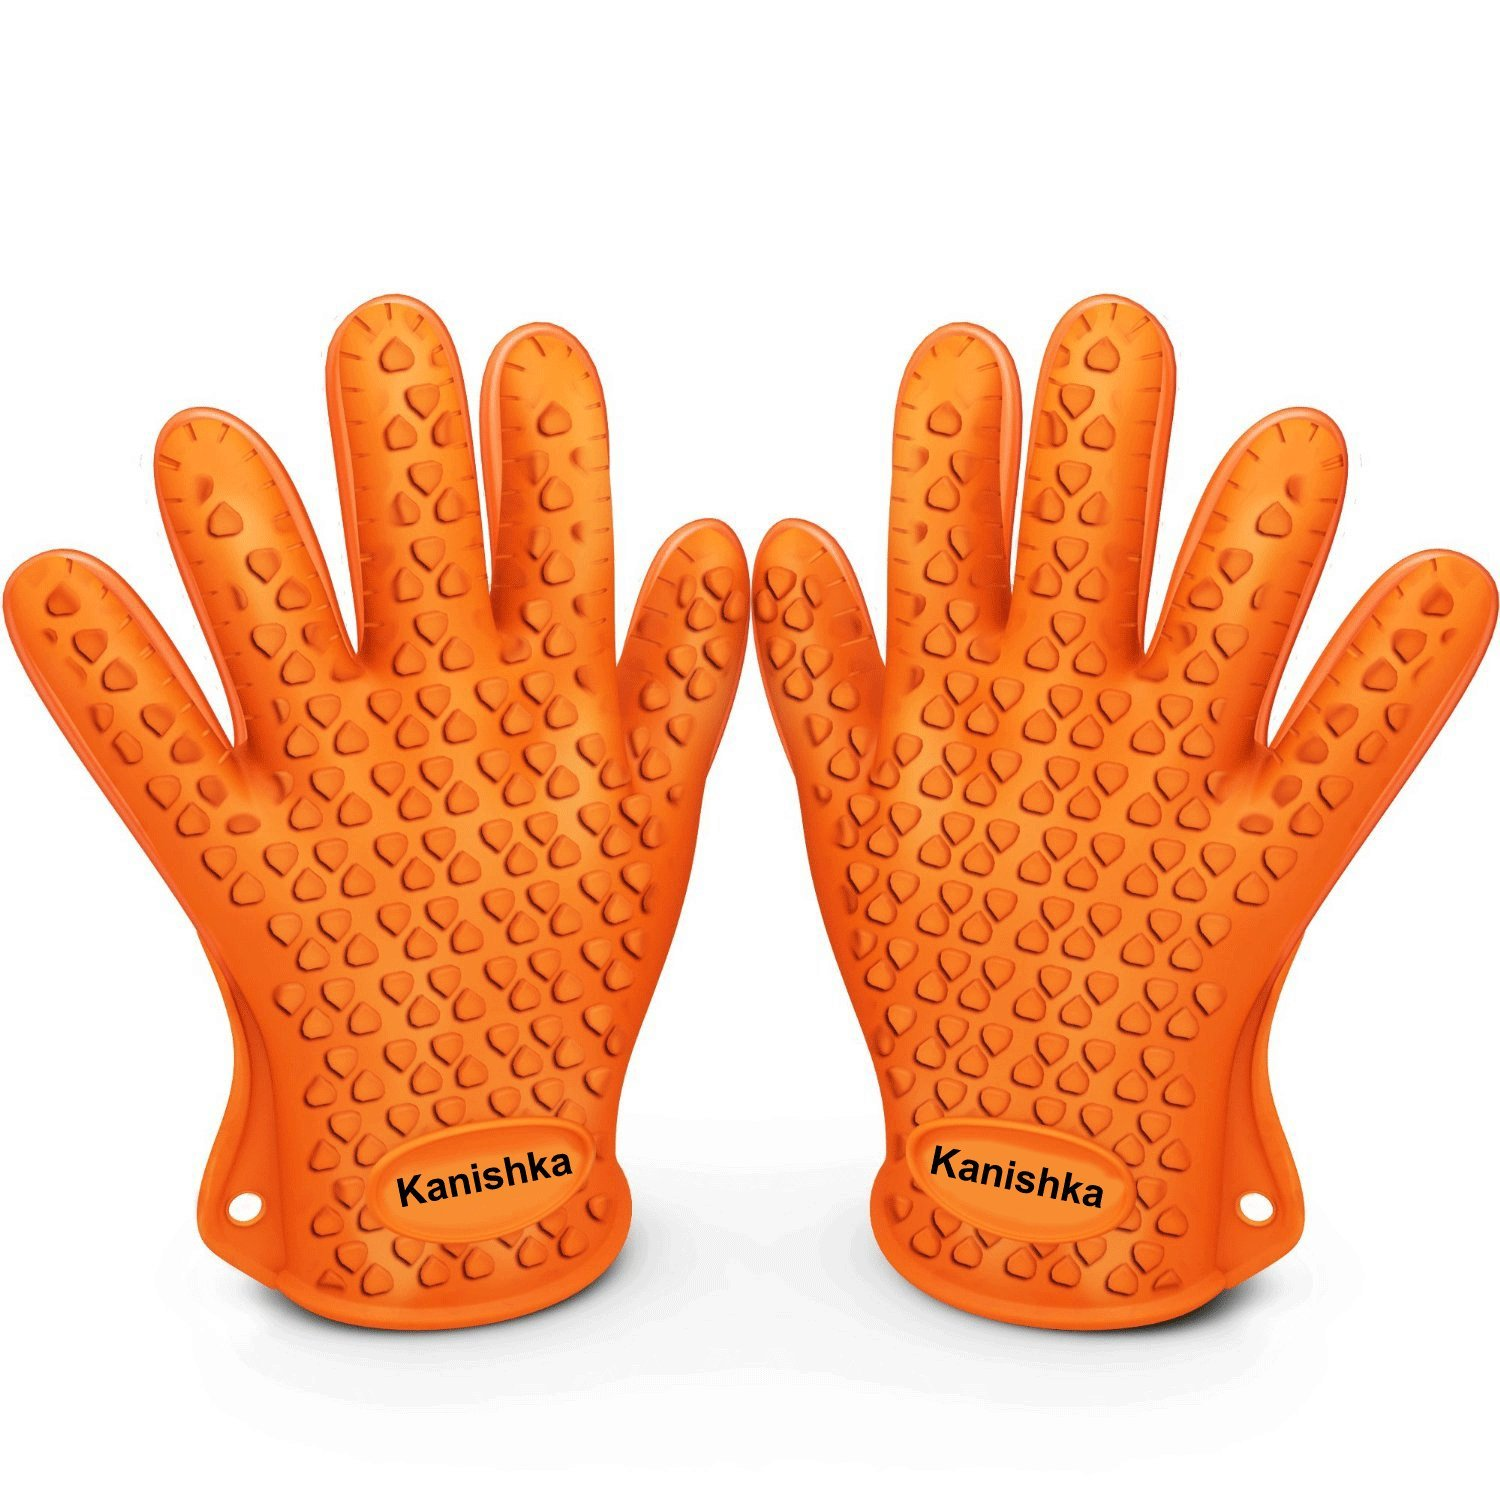 Heat Resistant Silicone Gloves for Cooking Offer Unrivaled Quality - Perfect for Inside and Outside Bbq Grilling. Protects From Unsafe and Painful Burns. Your Vital Protection for High Temperatures and More Competent Than Potholders. Stretchy, Versatile, and Plotted with a Superb Grip, Water-resistant, Dishwasher Safe, and Overtakes Oven Mitts & Any Other Related Product. (Orange)